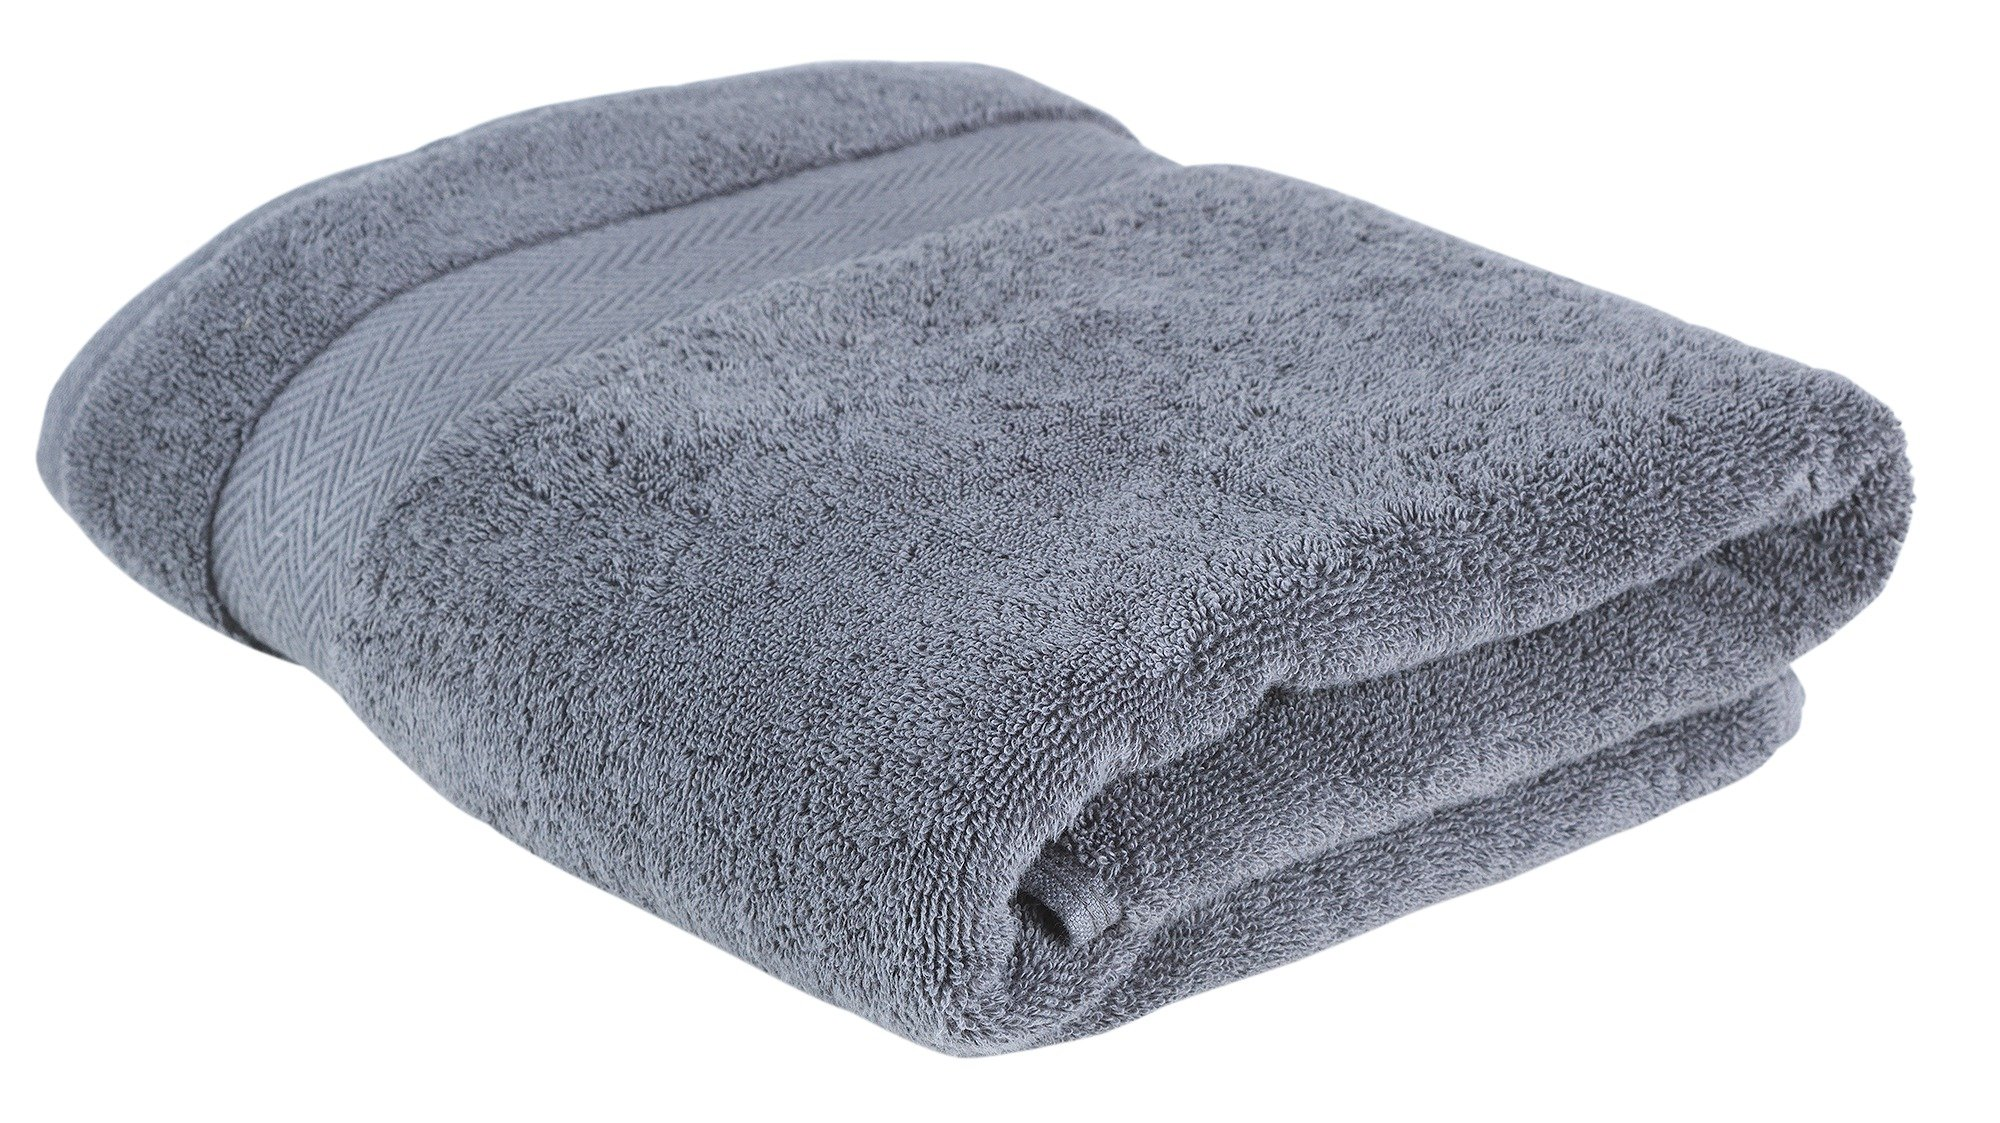 Kingsley - Hygro Bath Sheet - Slate